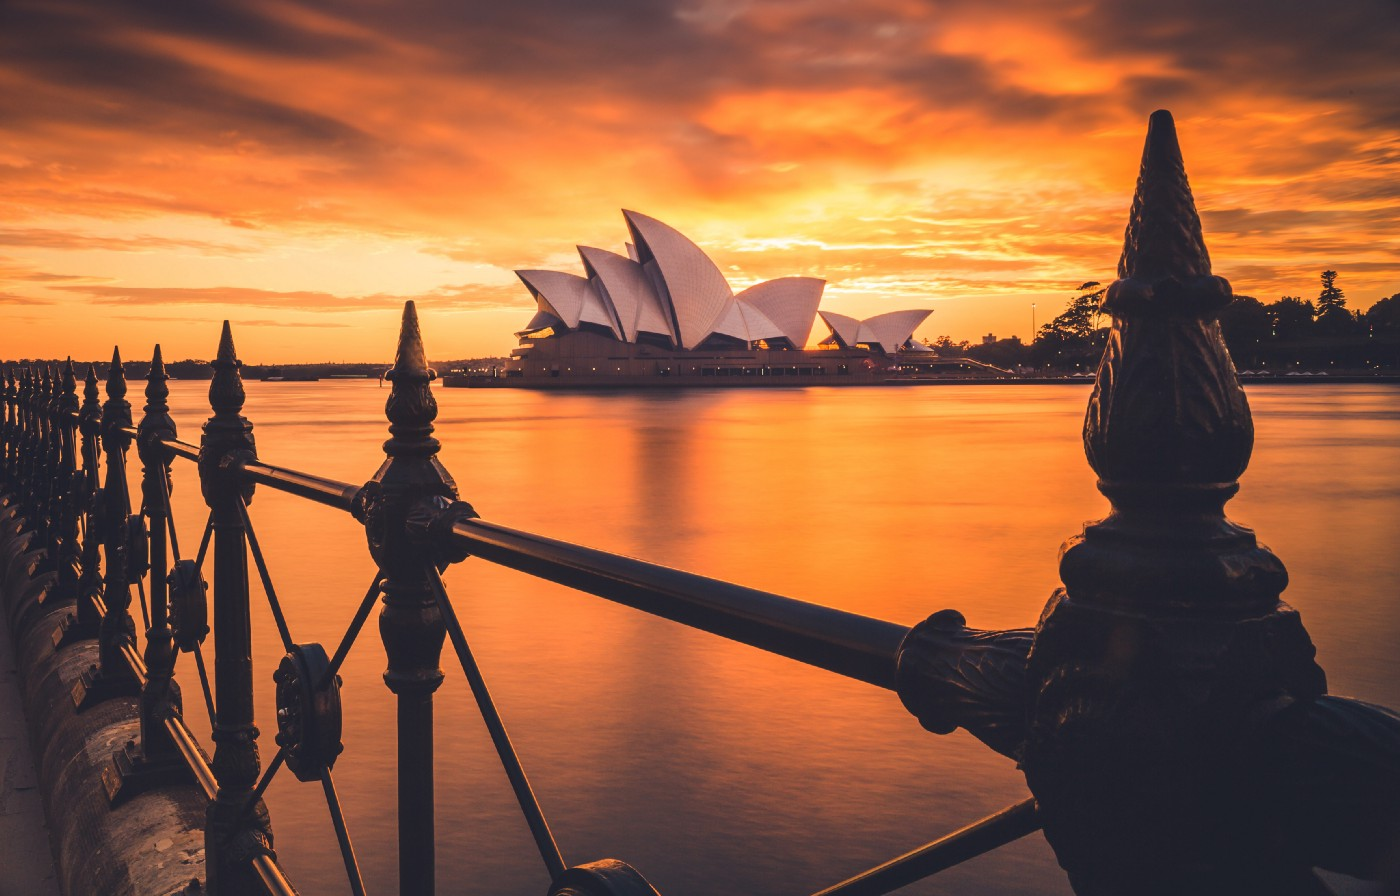 The Sydney Opera House set on a bright orange sky at dusk